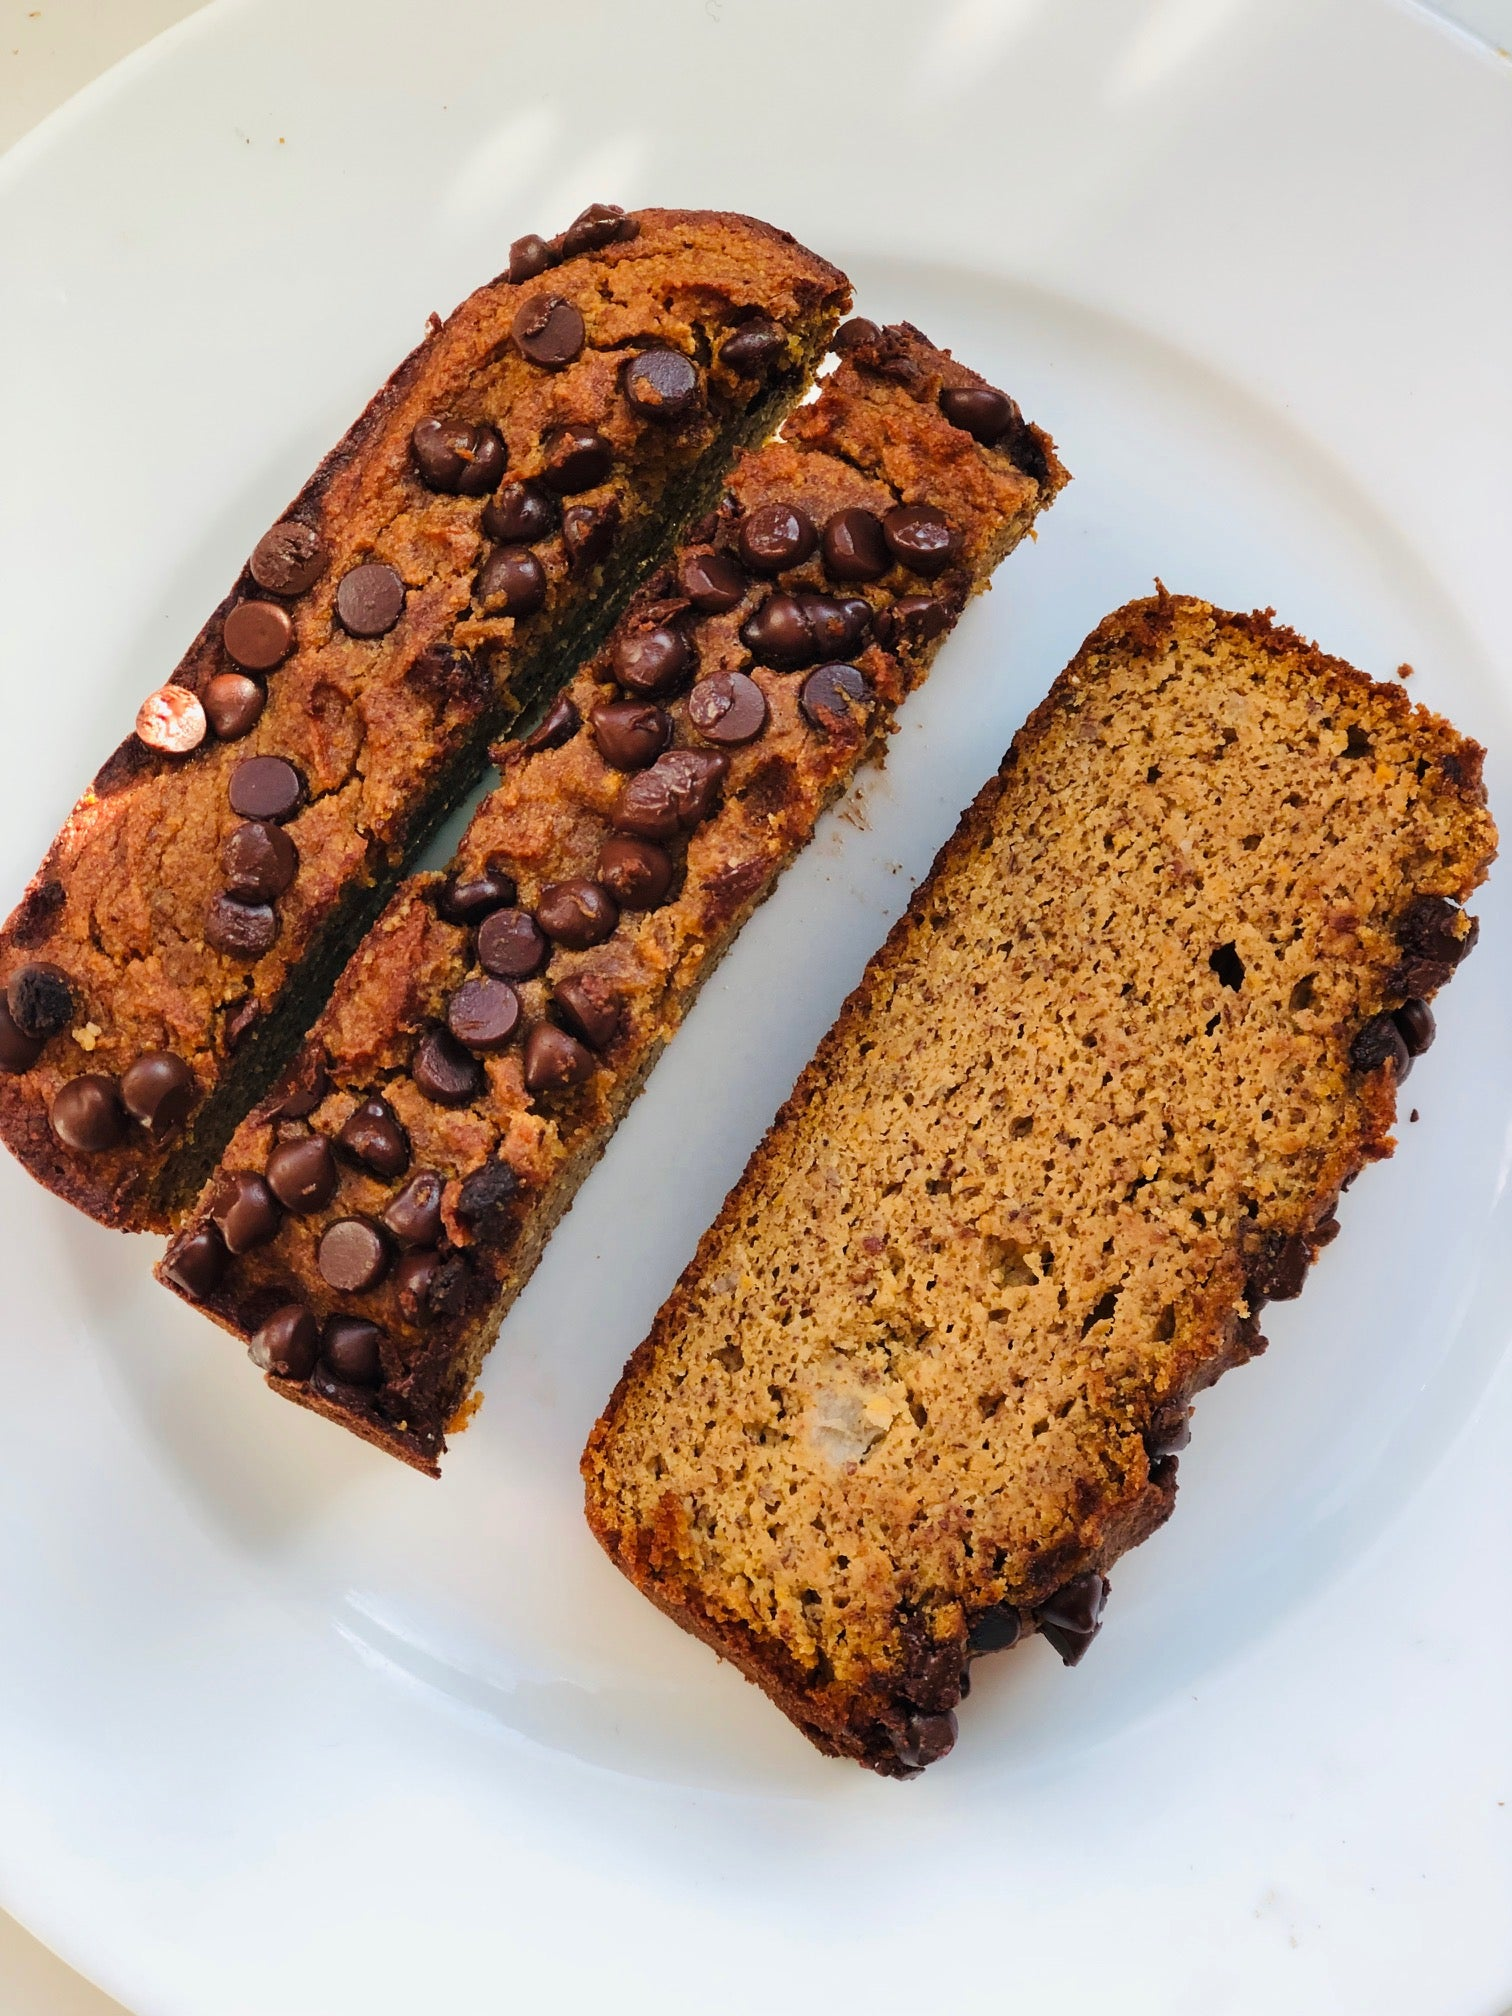 Sweet Potato & Banana Bread (Paleo, Grain Free, Gluten Free)